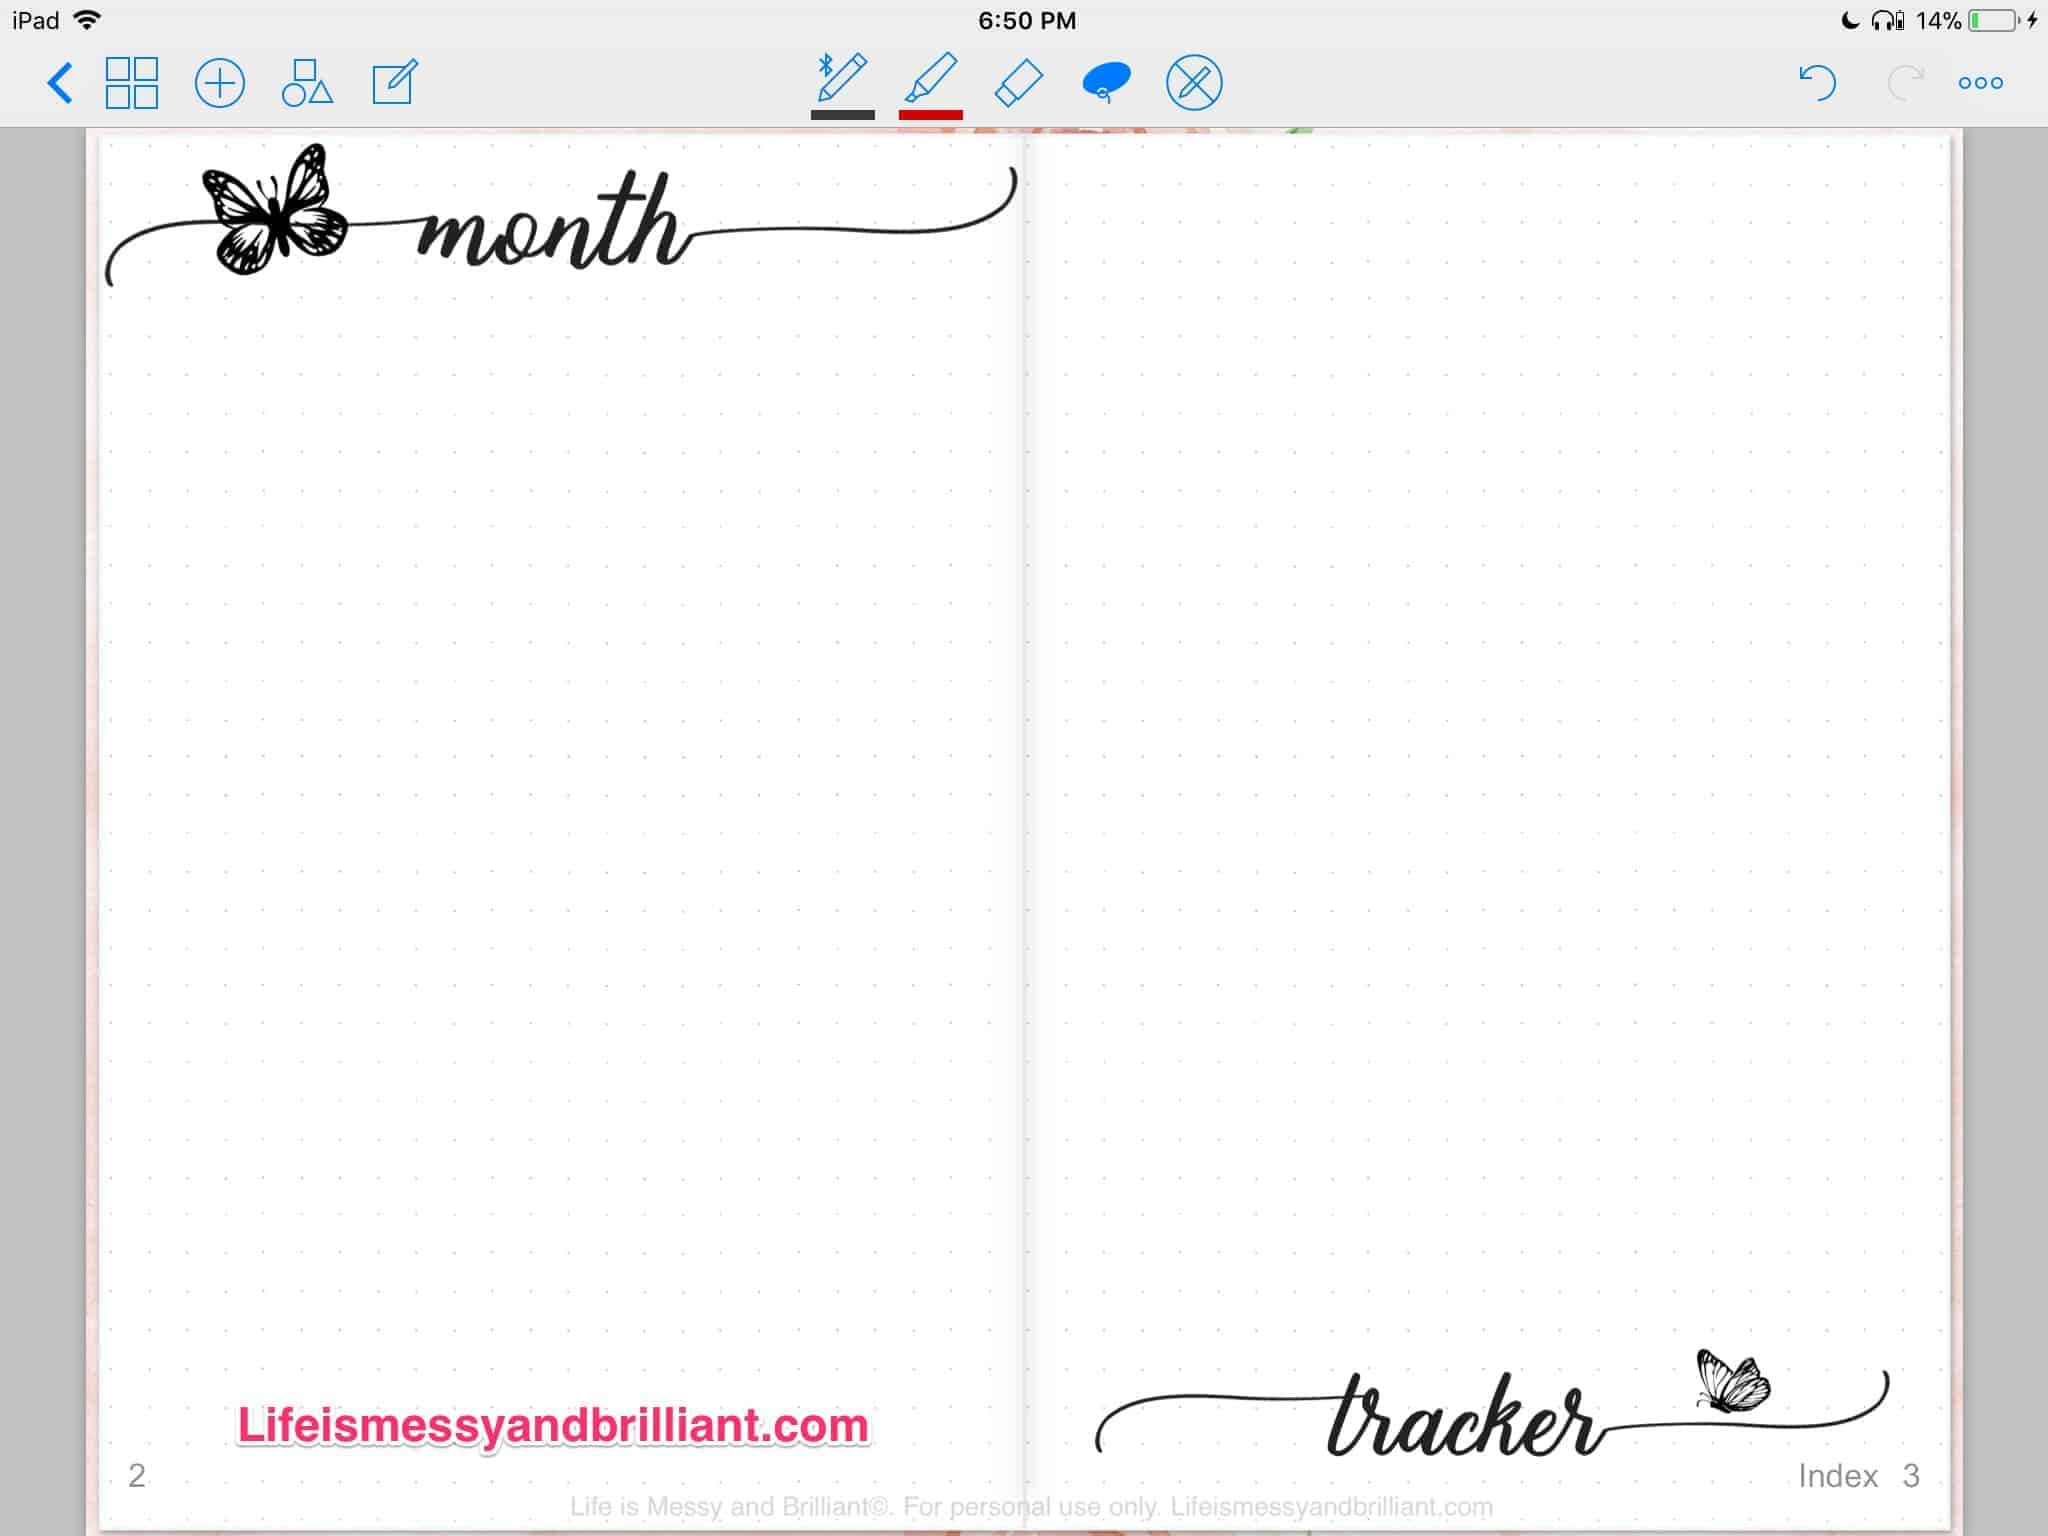 How To Add Digital Stickers To The Apps Notability And